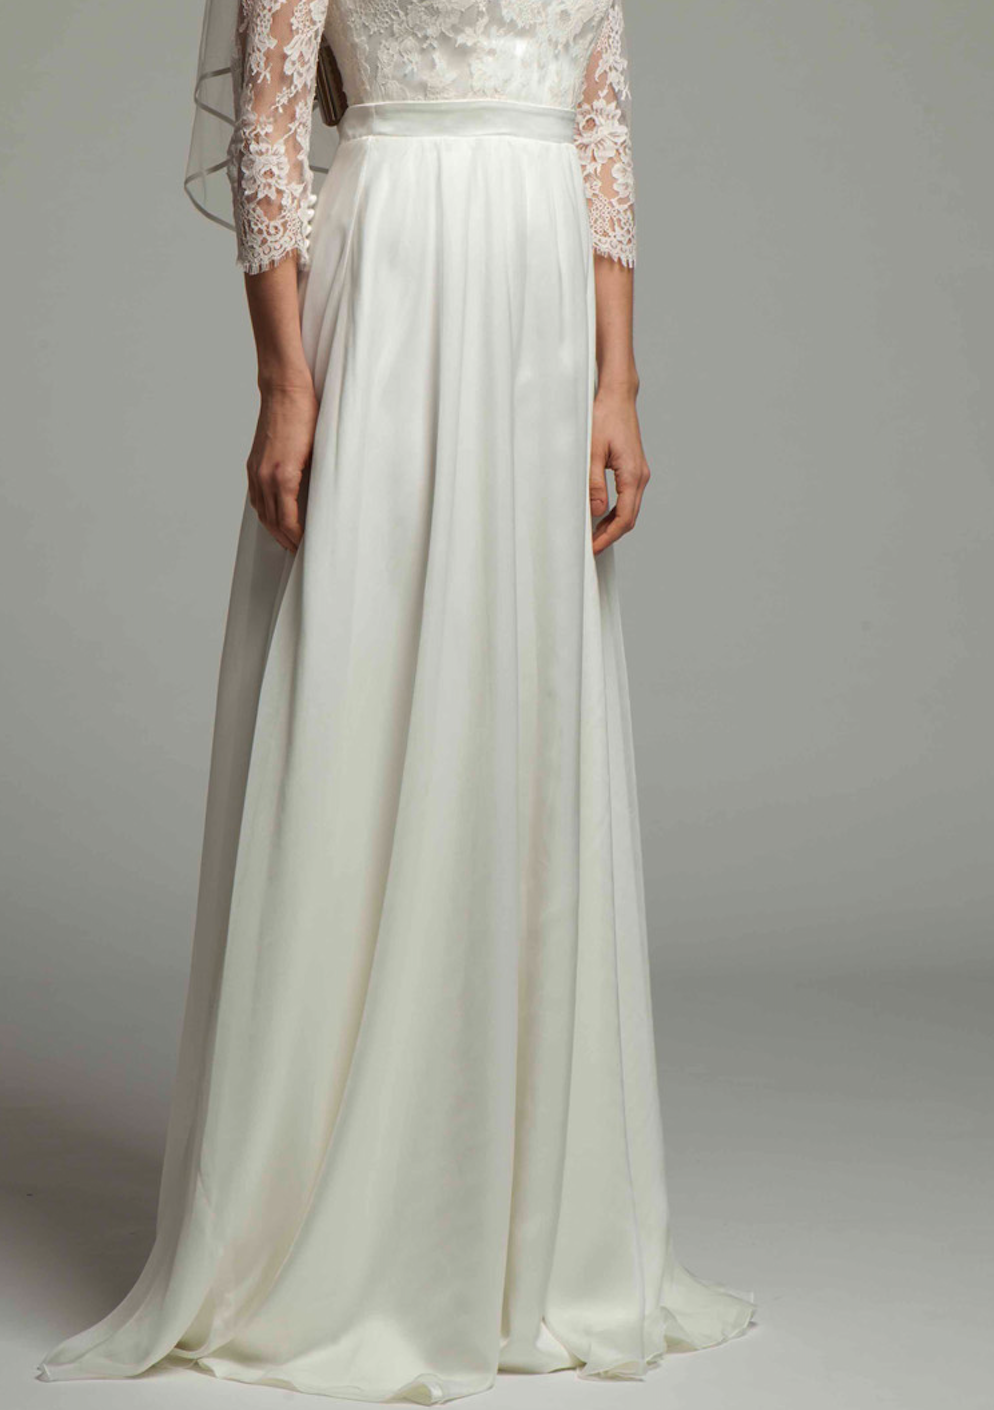 Soft Silk Chiffon Bridal A-line Skirt